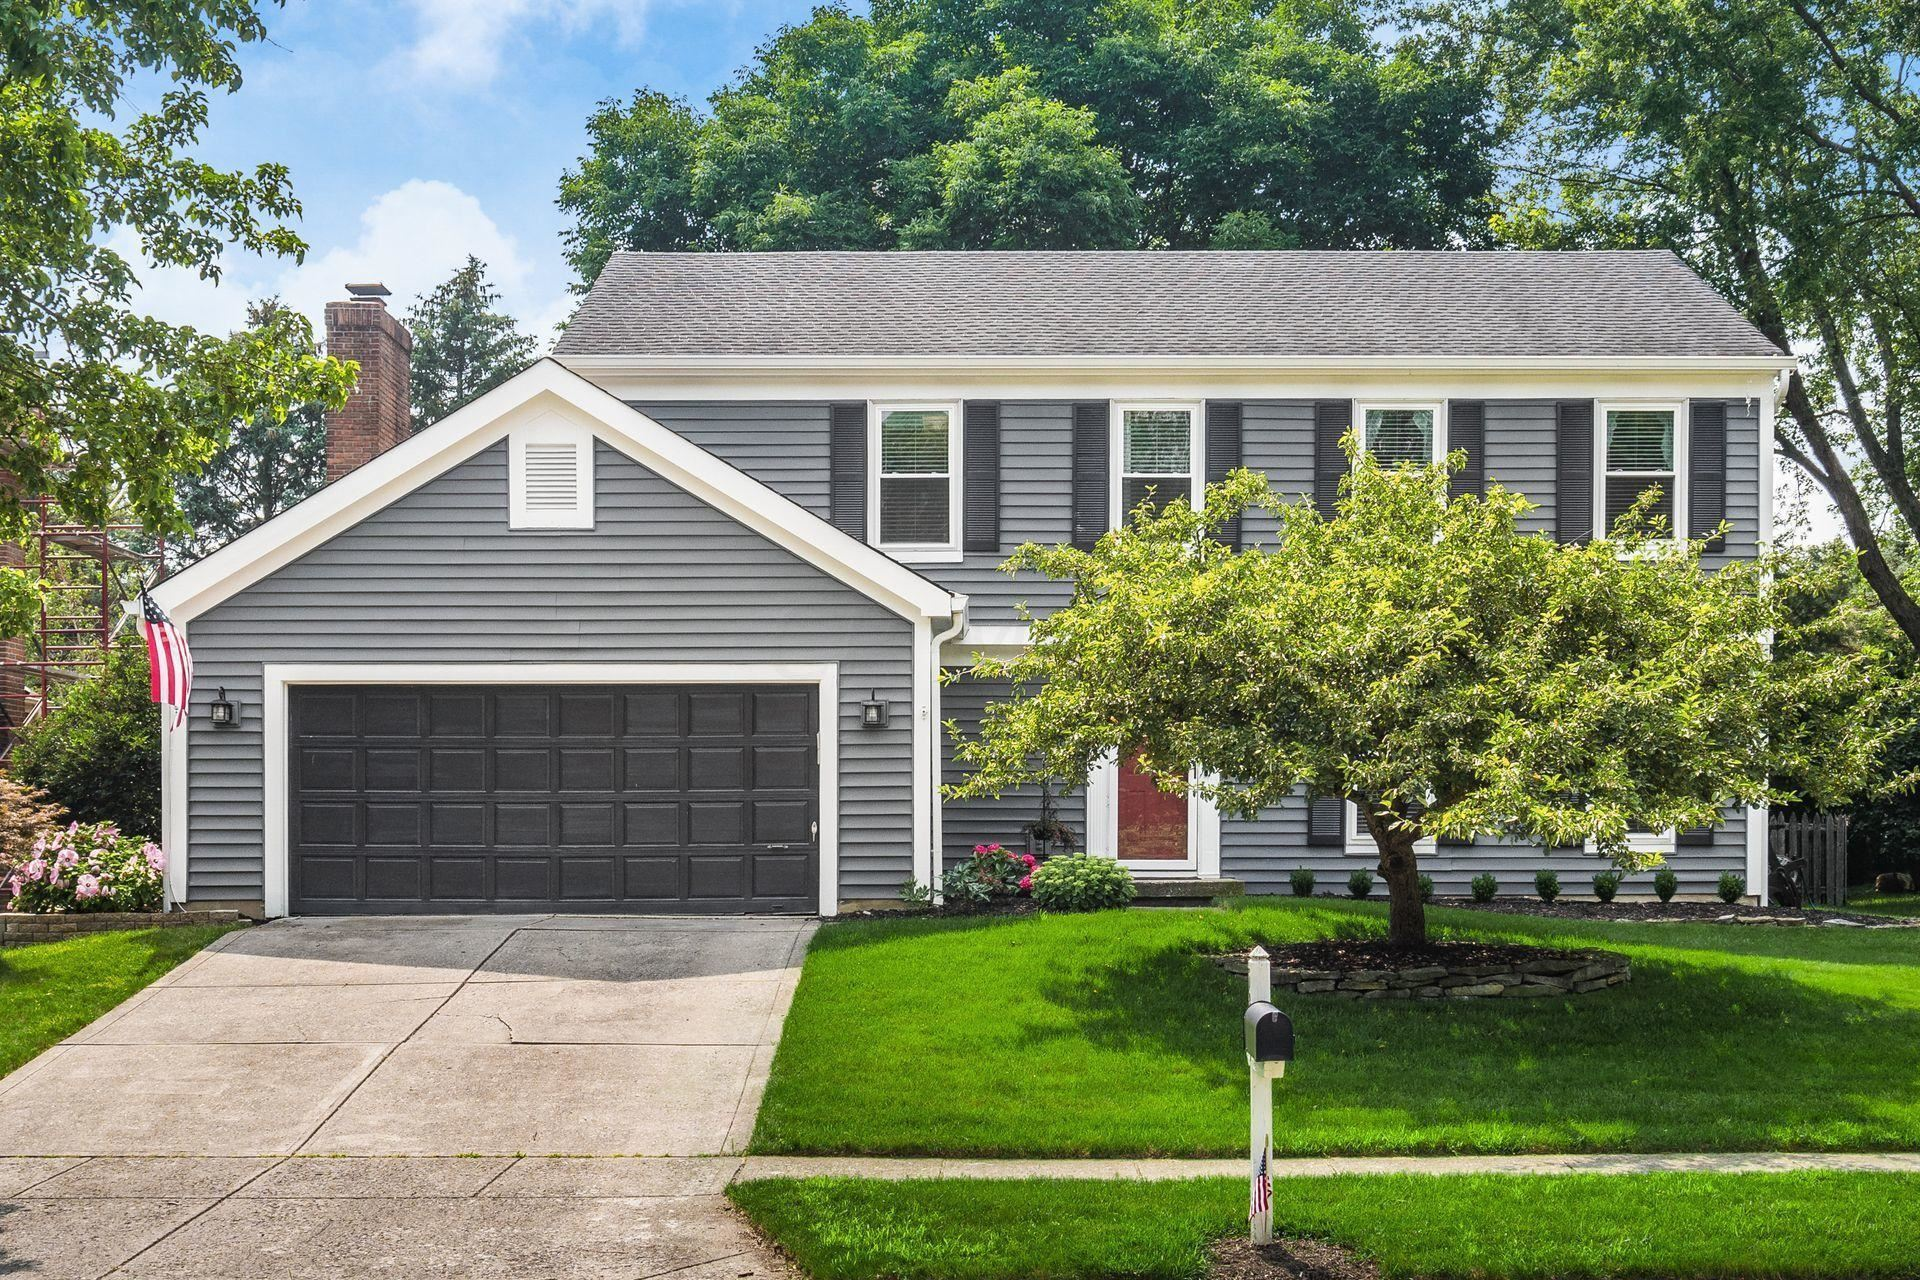 Photo of 5857 Connolly Court, Dublin, OH 43016 (MLS # 221027850)